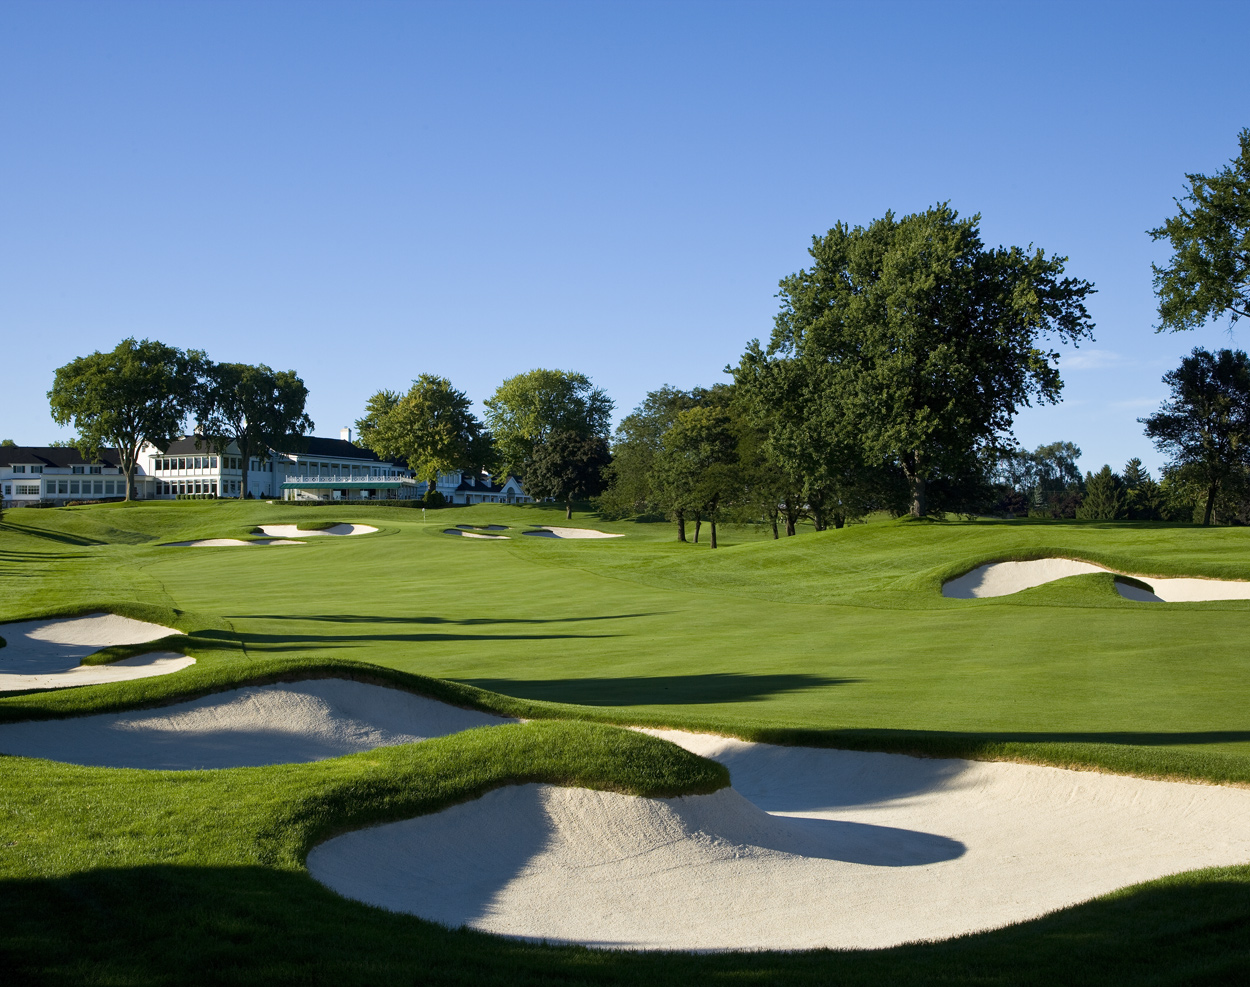 Oakland Hills Country Club - Wikipedia